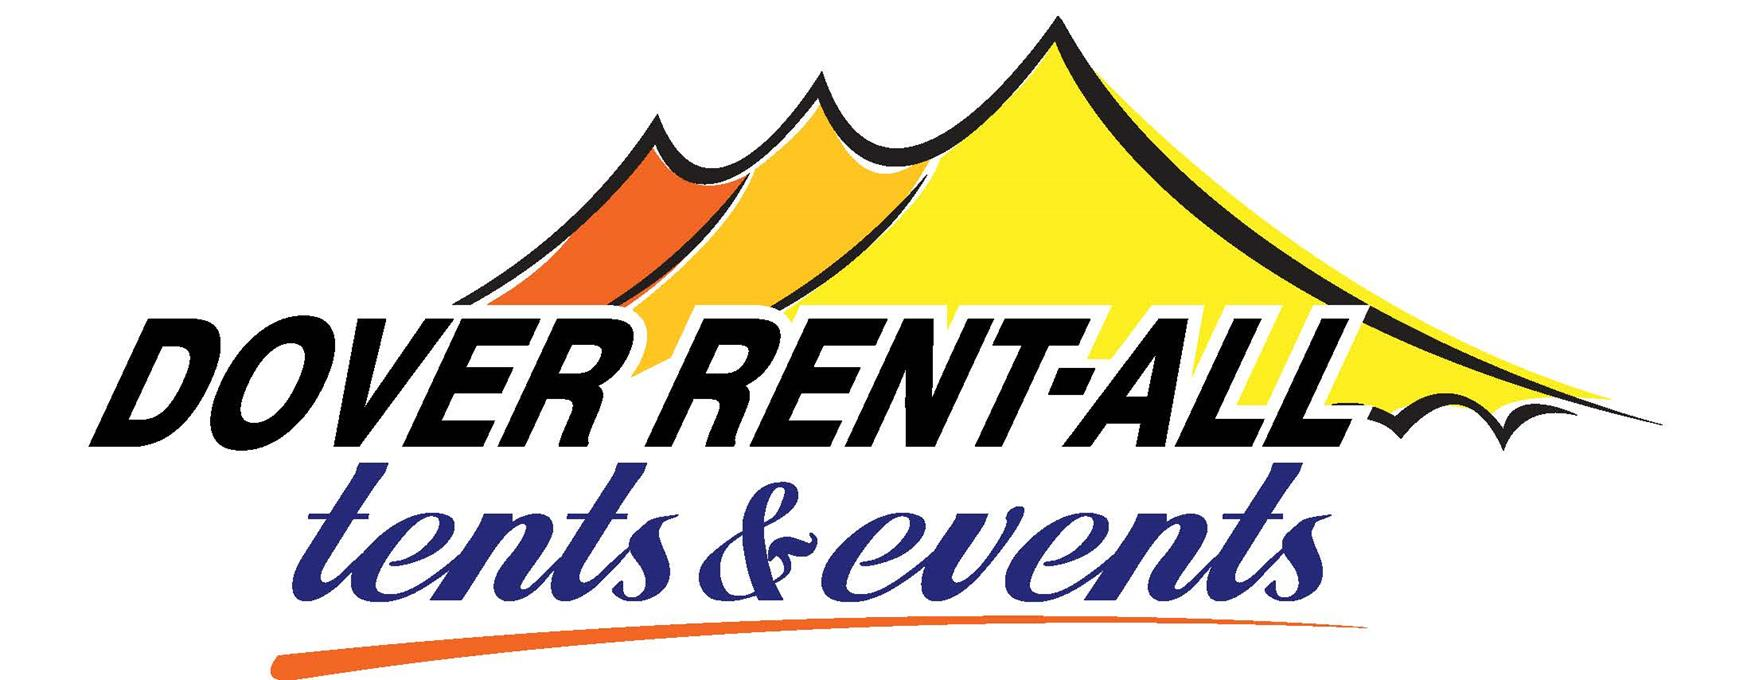 Dover Rent All Tents and Events